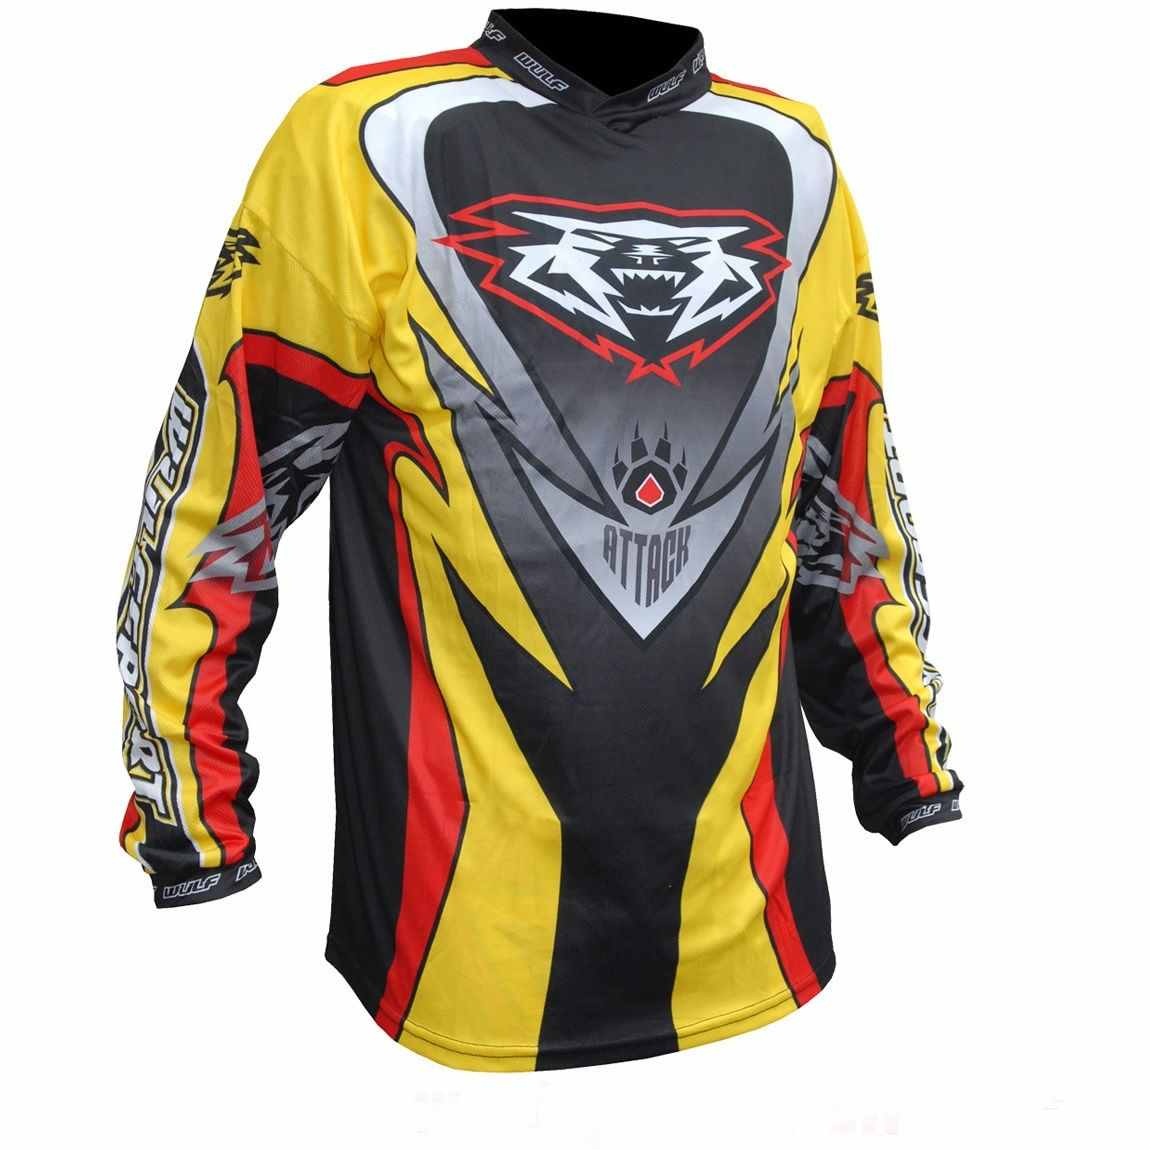 Wulfsport ATTACK Cub Race Shirt - Multi Colour